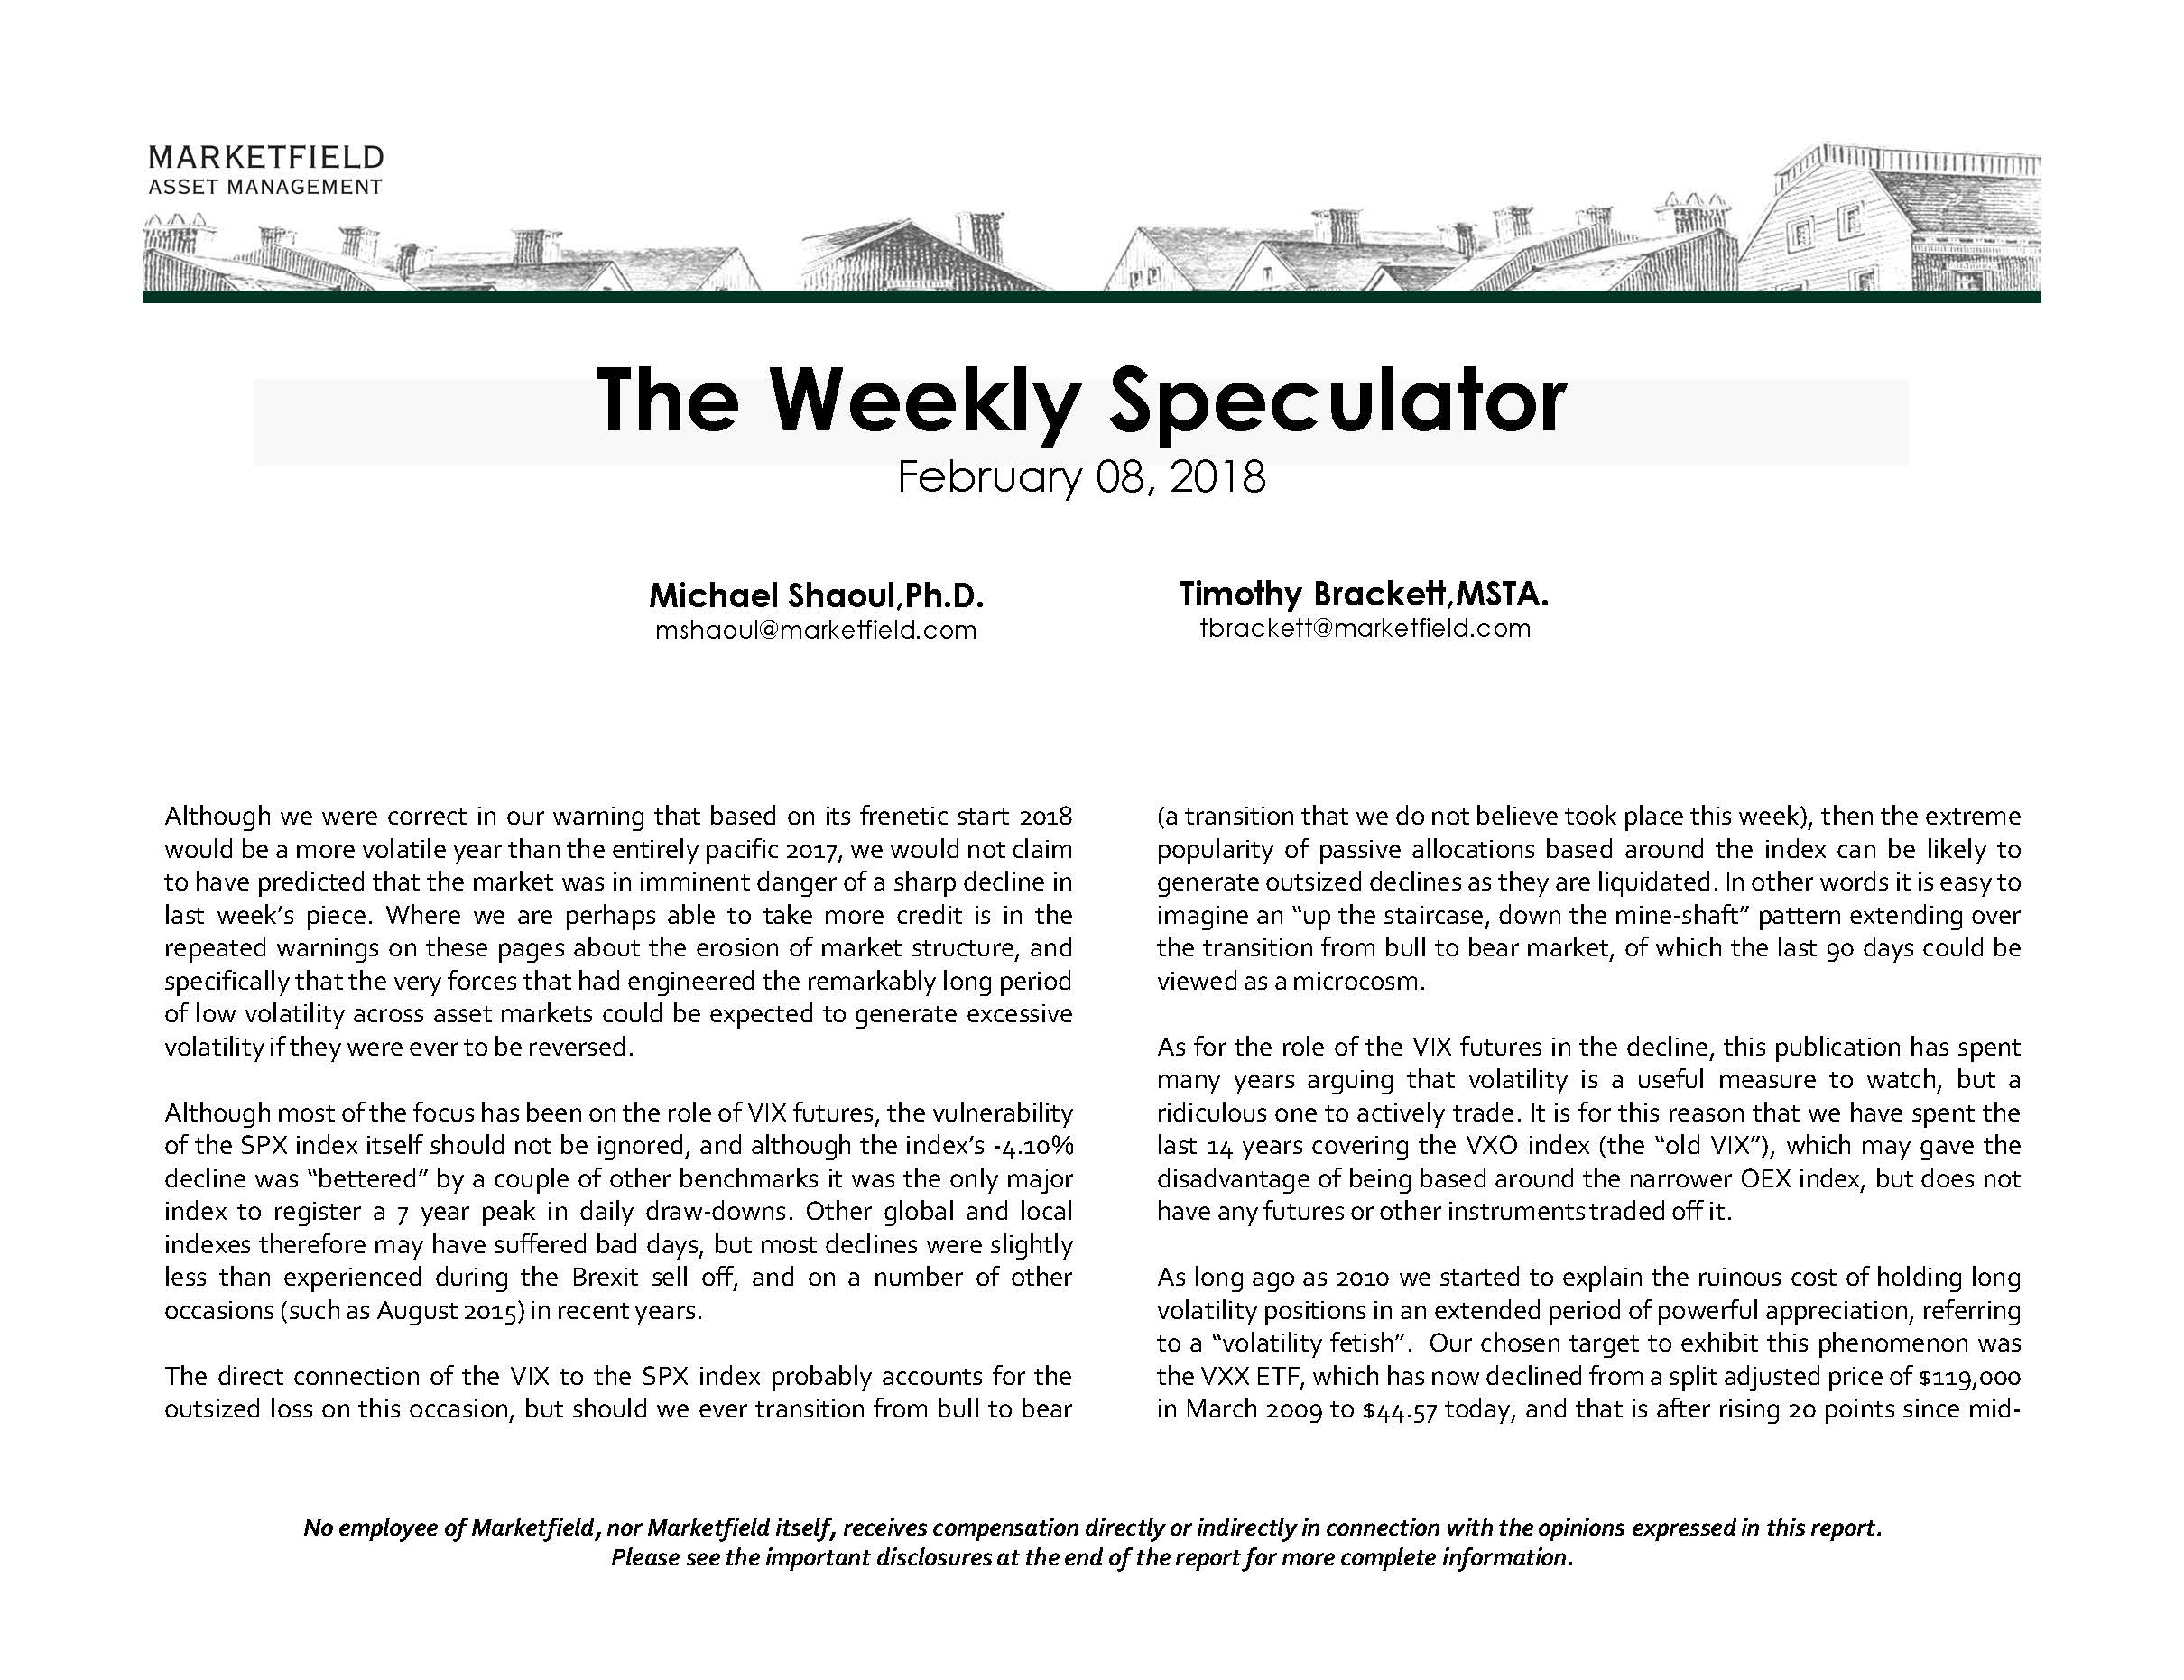 marketfield weekly speculator for 2-08-18_Page_01.jpg